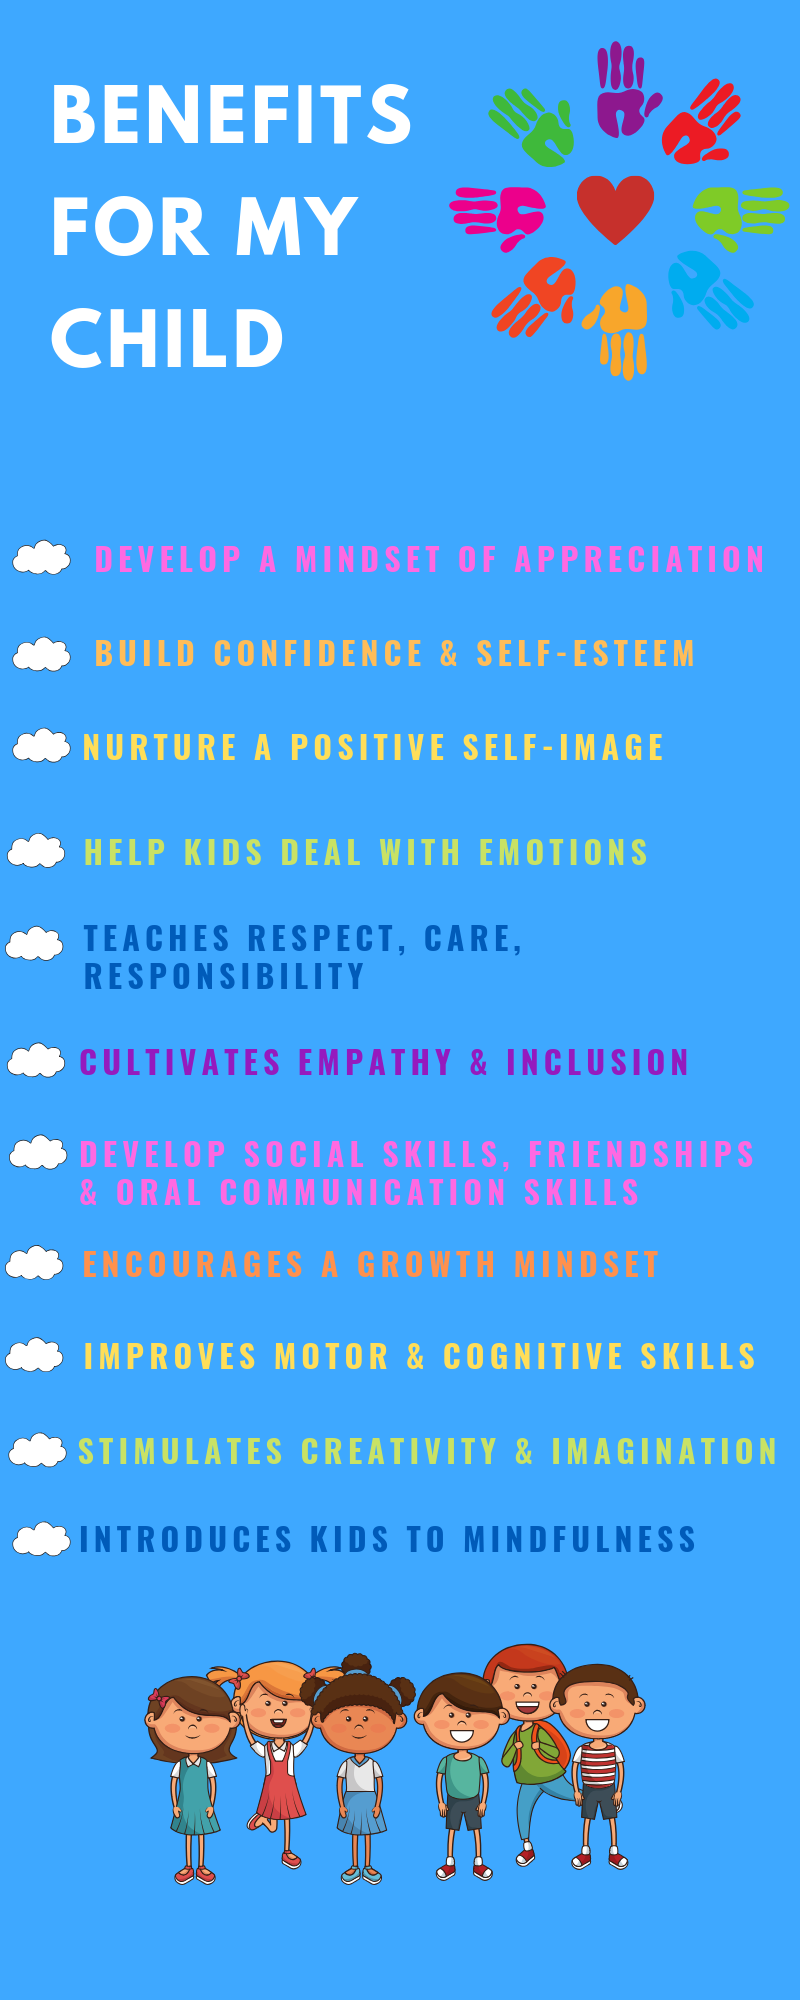 Benefits for my child, children, skills, respect, responsibility, mindfulness, creativity, imagination, growth mindset, empathy, friendship, confidence, self esteem